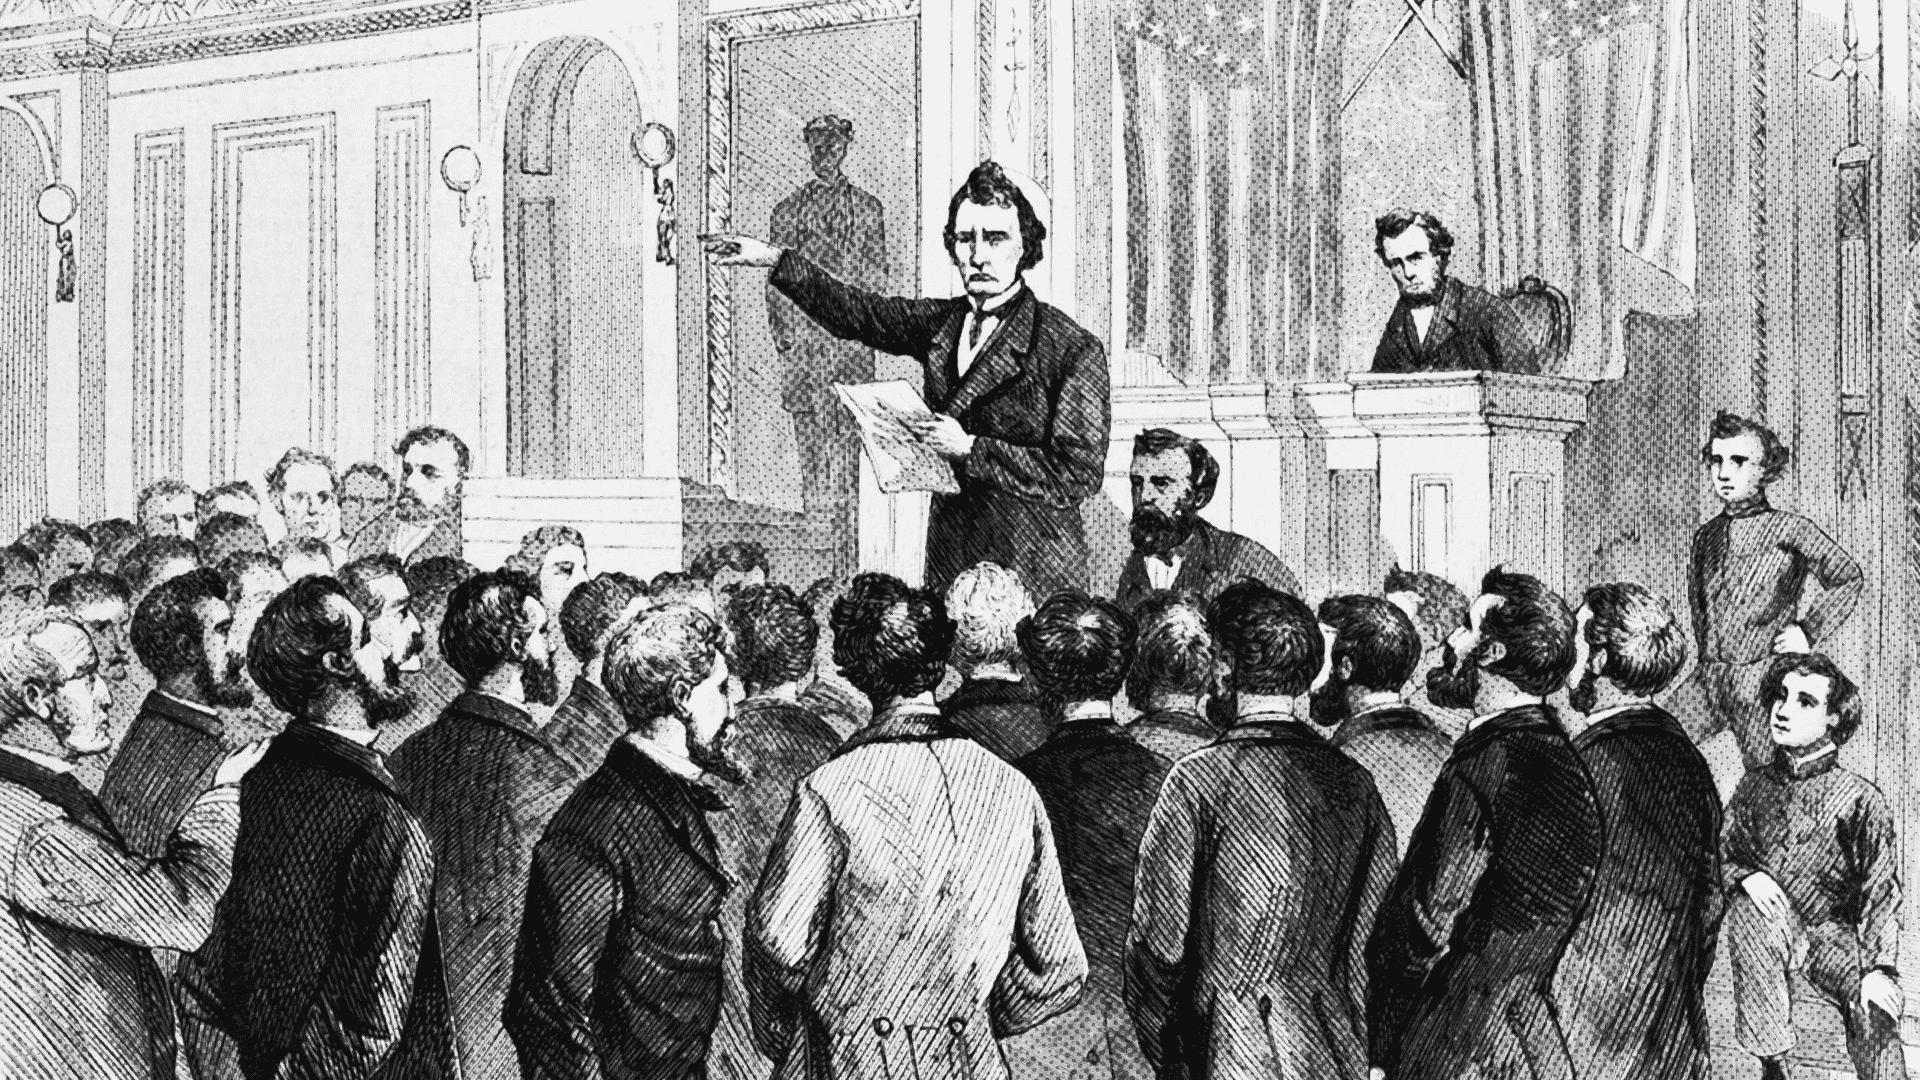 The Impeachment of Andrew Johnson